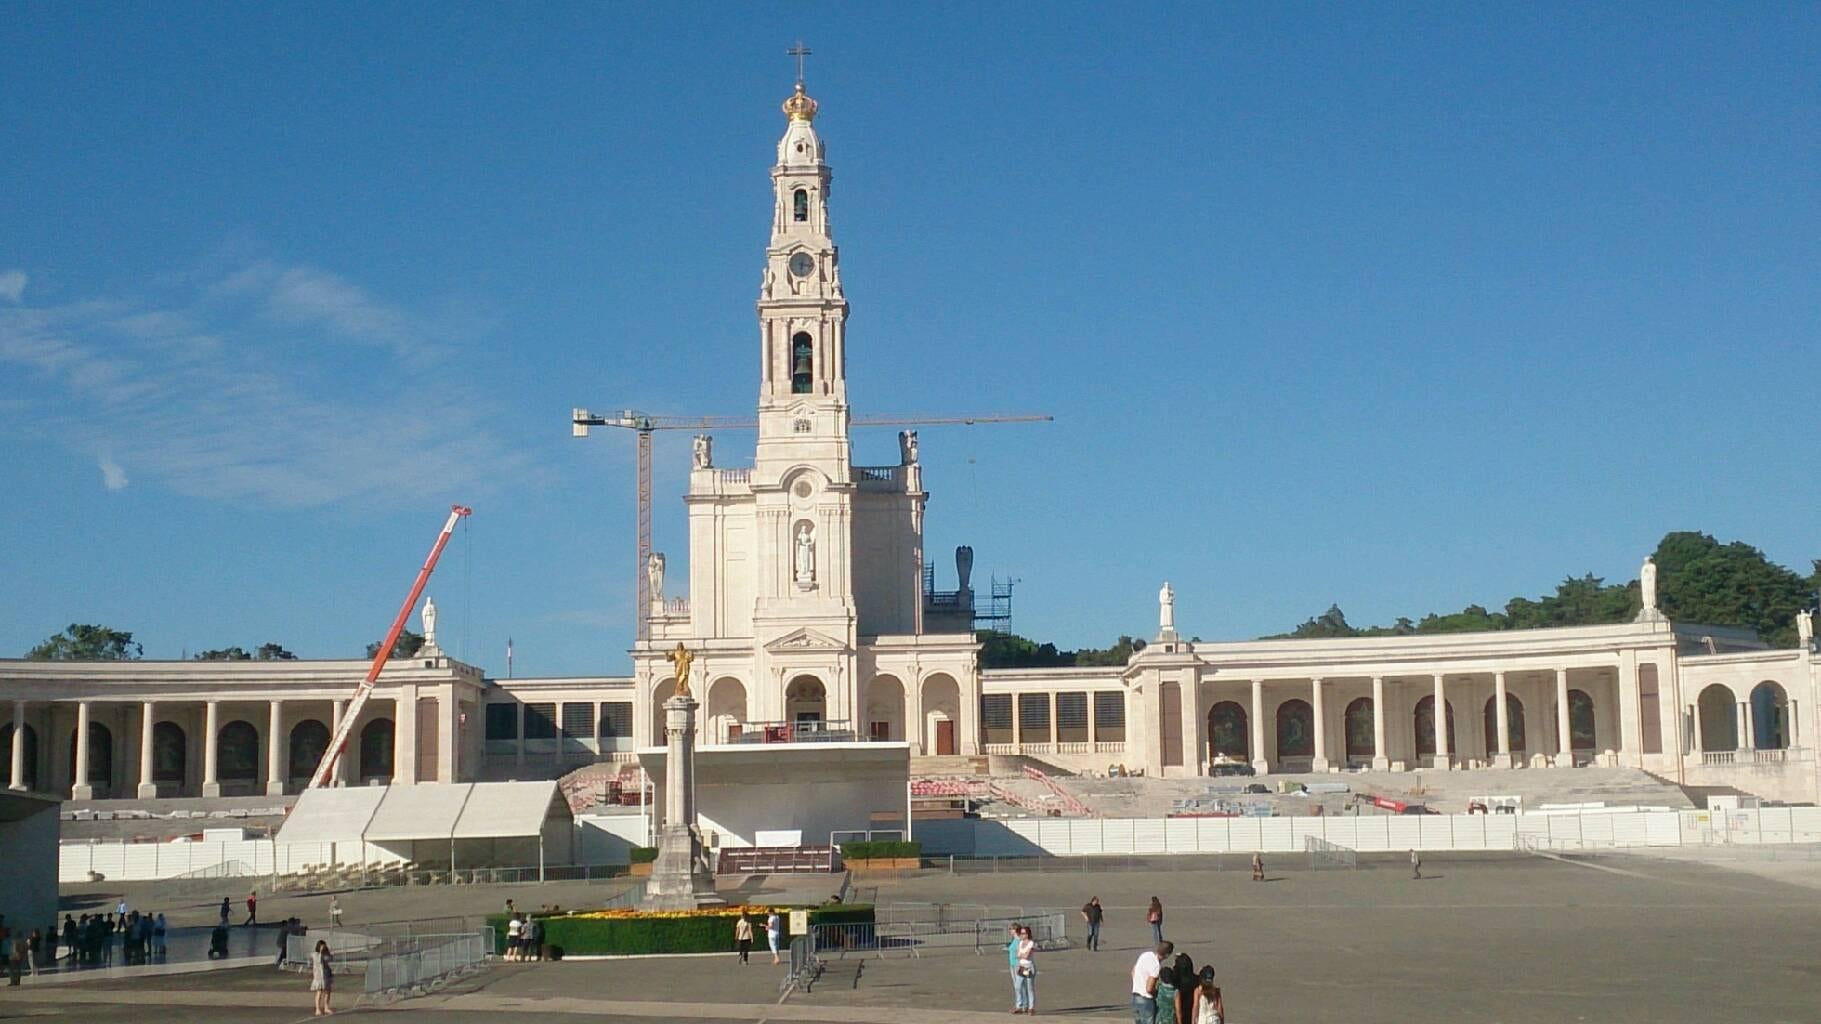 Obelisk in Basilica of Our Lady of the Rosary of Fatima